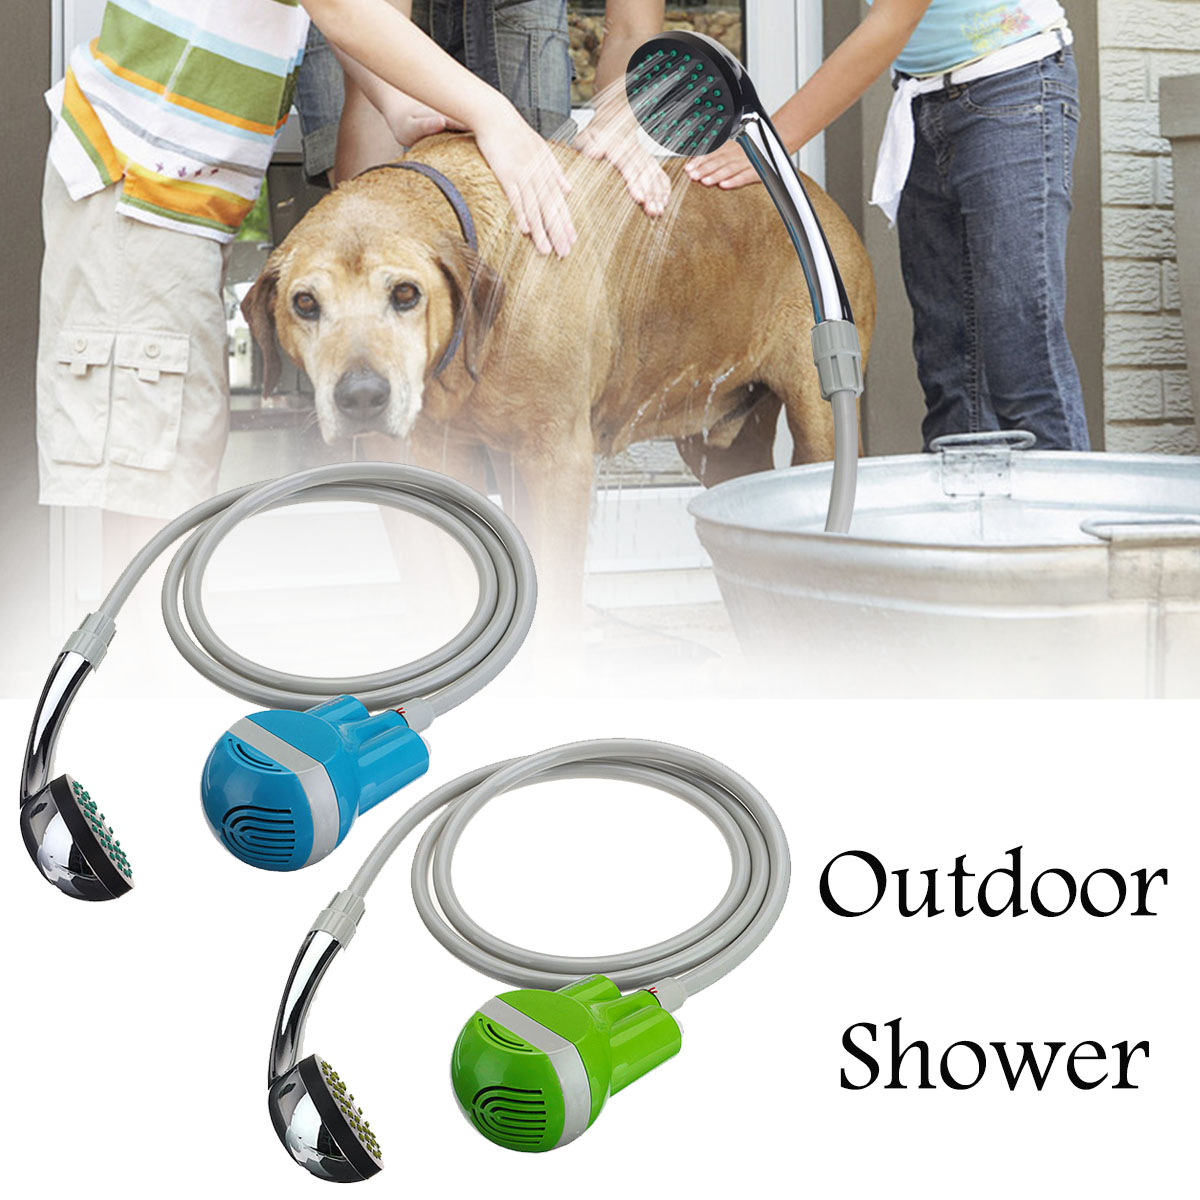 Car Washer 12v Portable Camping Shower Wireless Car Shower Dc 12v Pump Pressure Shower Outdoor Travel Caravan Van Pet Water Tank Agreeable Sweetness Water Bags Campcookingsupplies